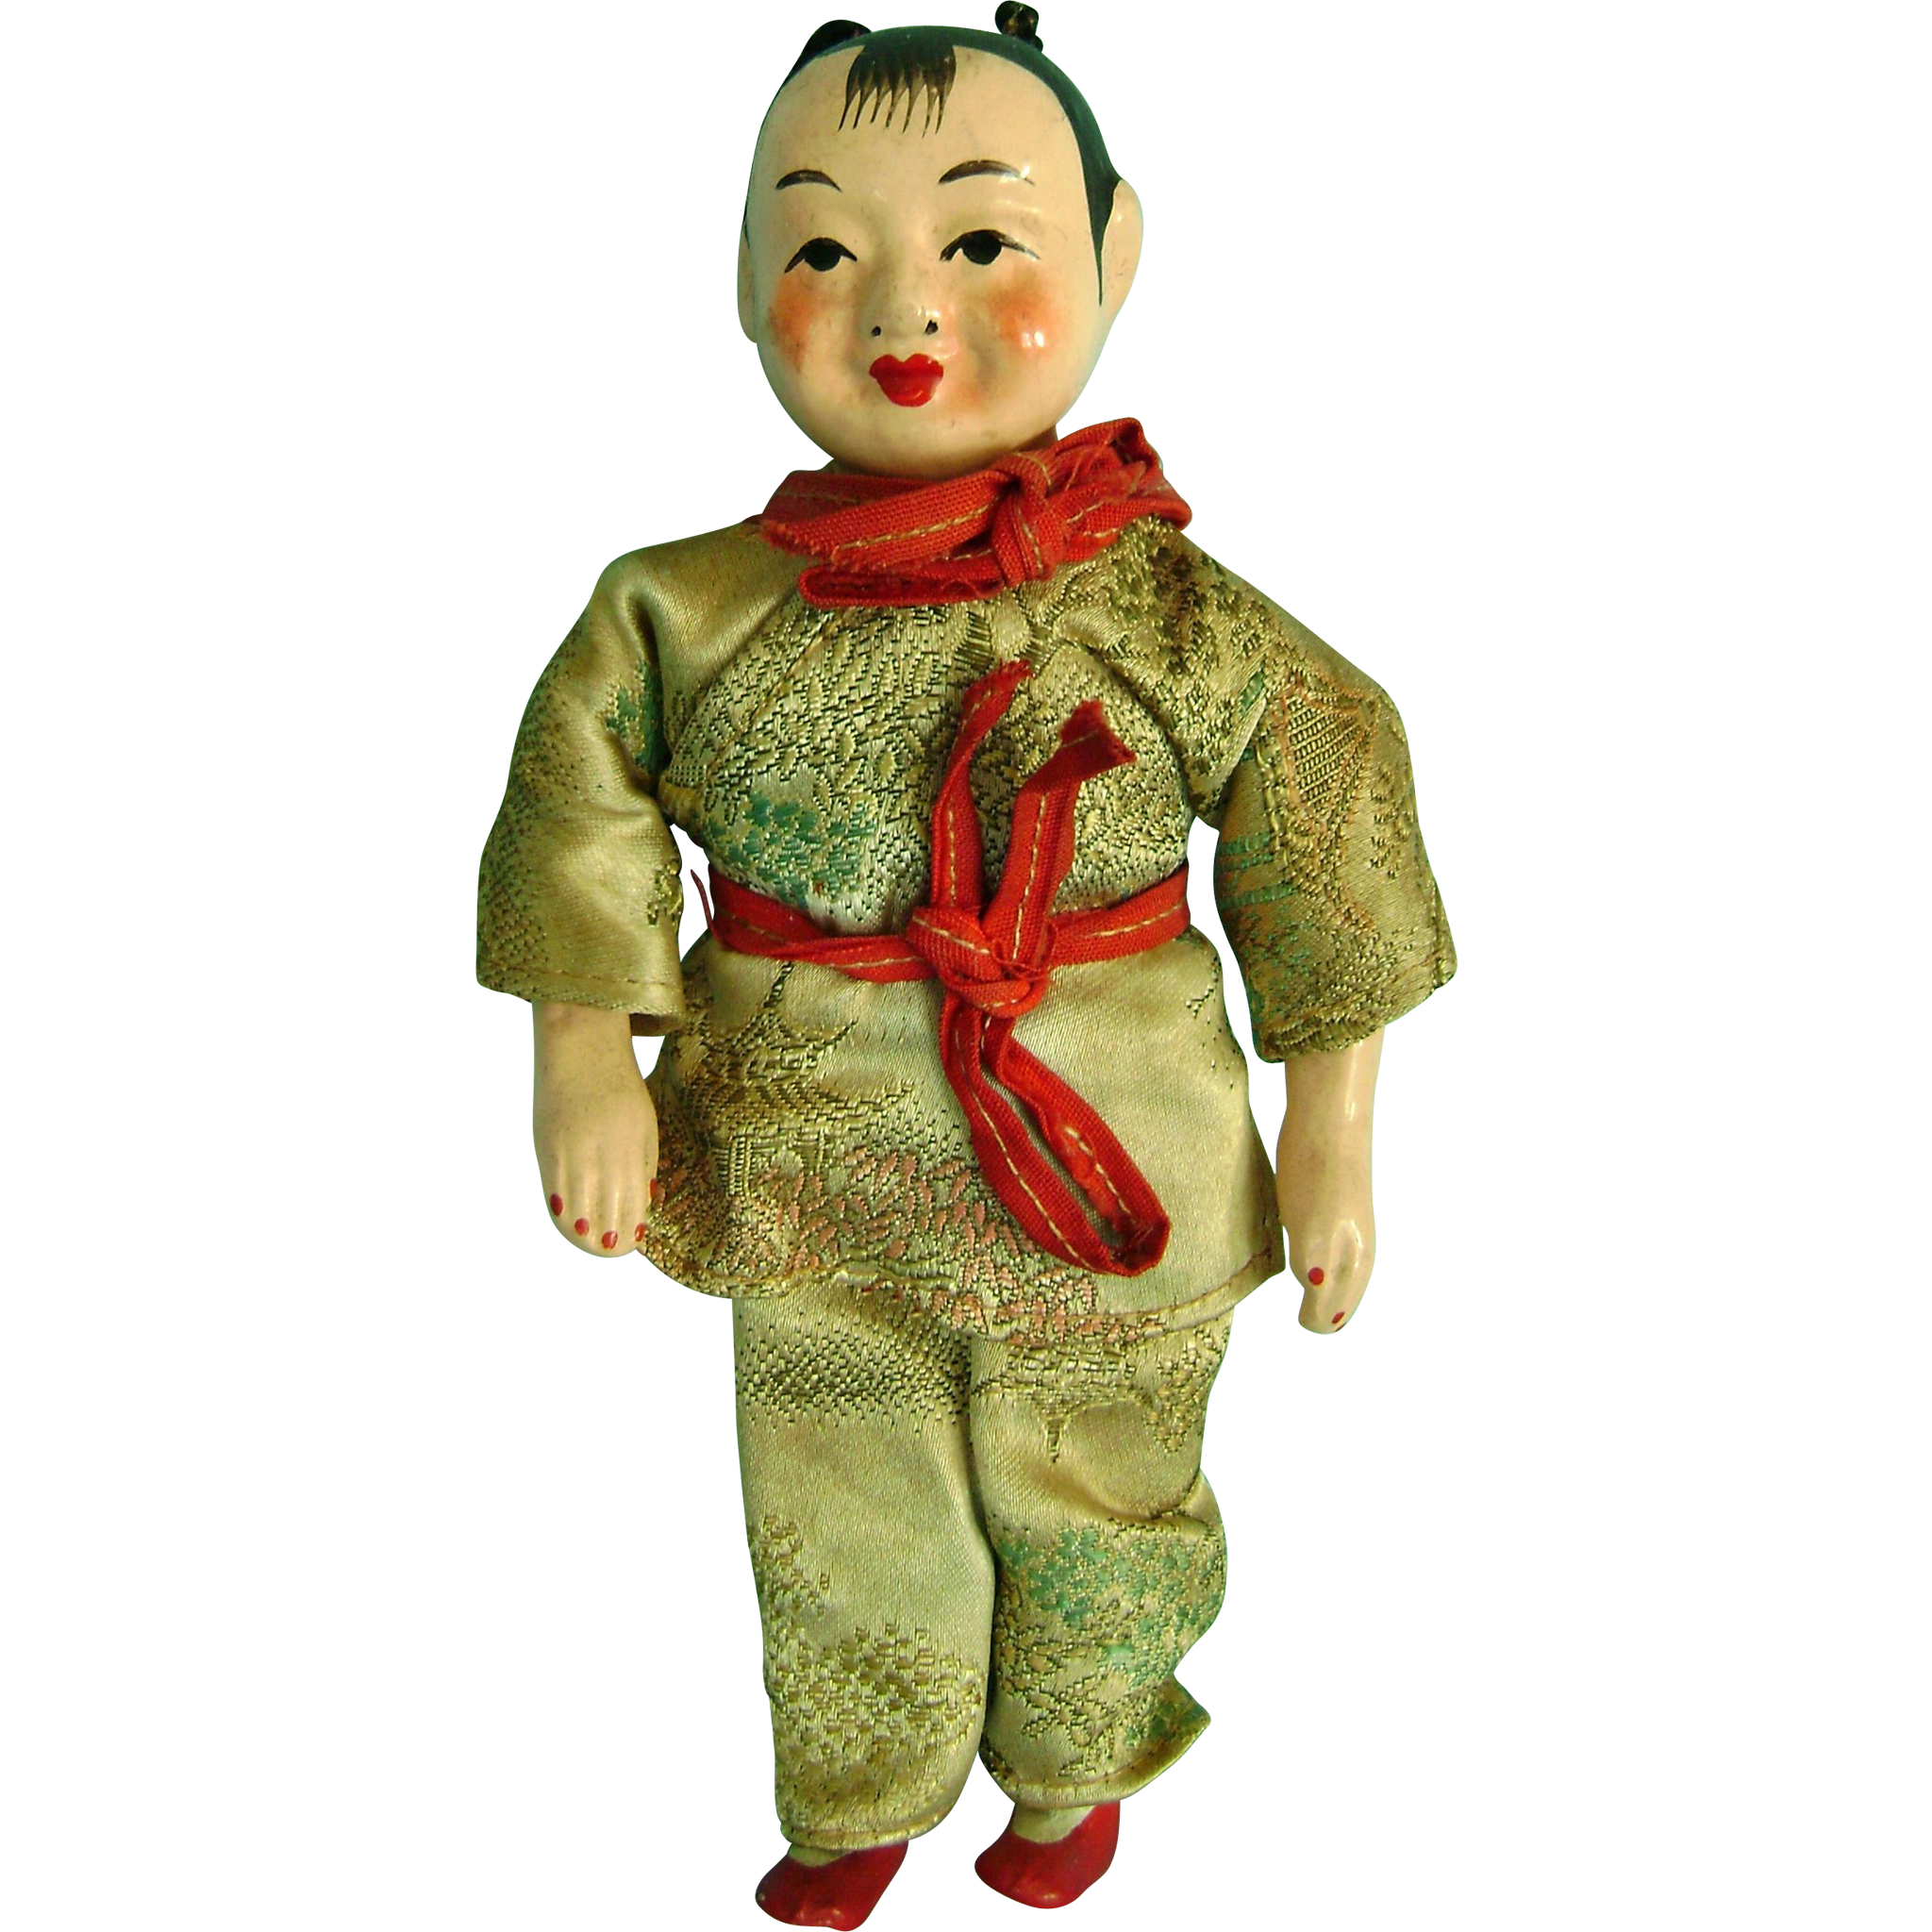 china doll essay A china doll is a doll made partially or wholly out of glazed porcelain the name comes from china being used to refer to the material porcelain.